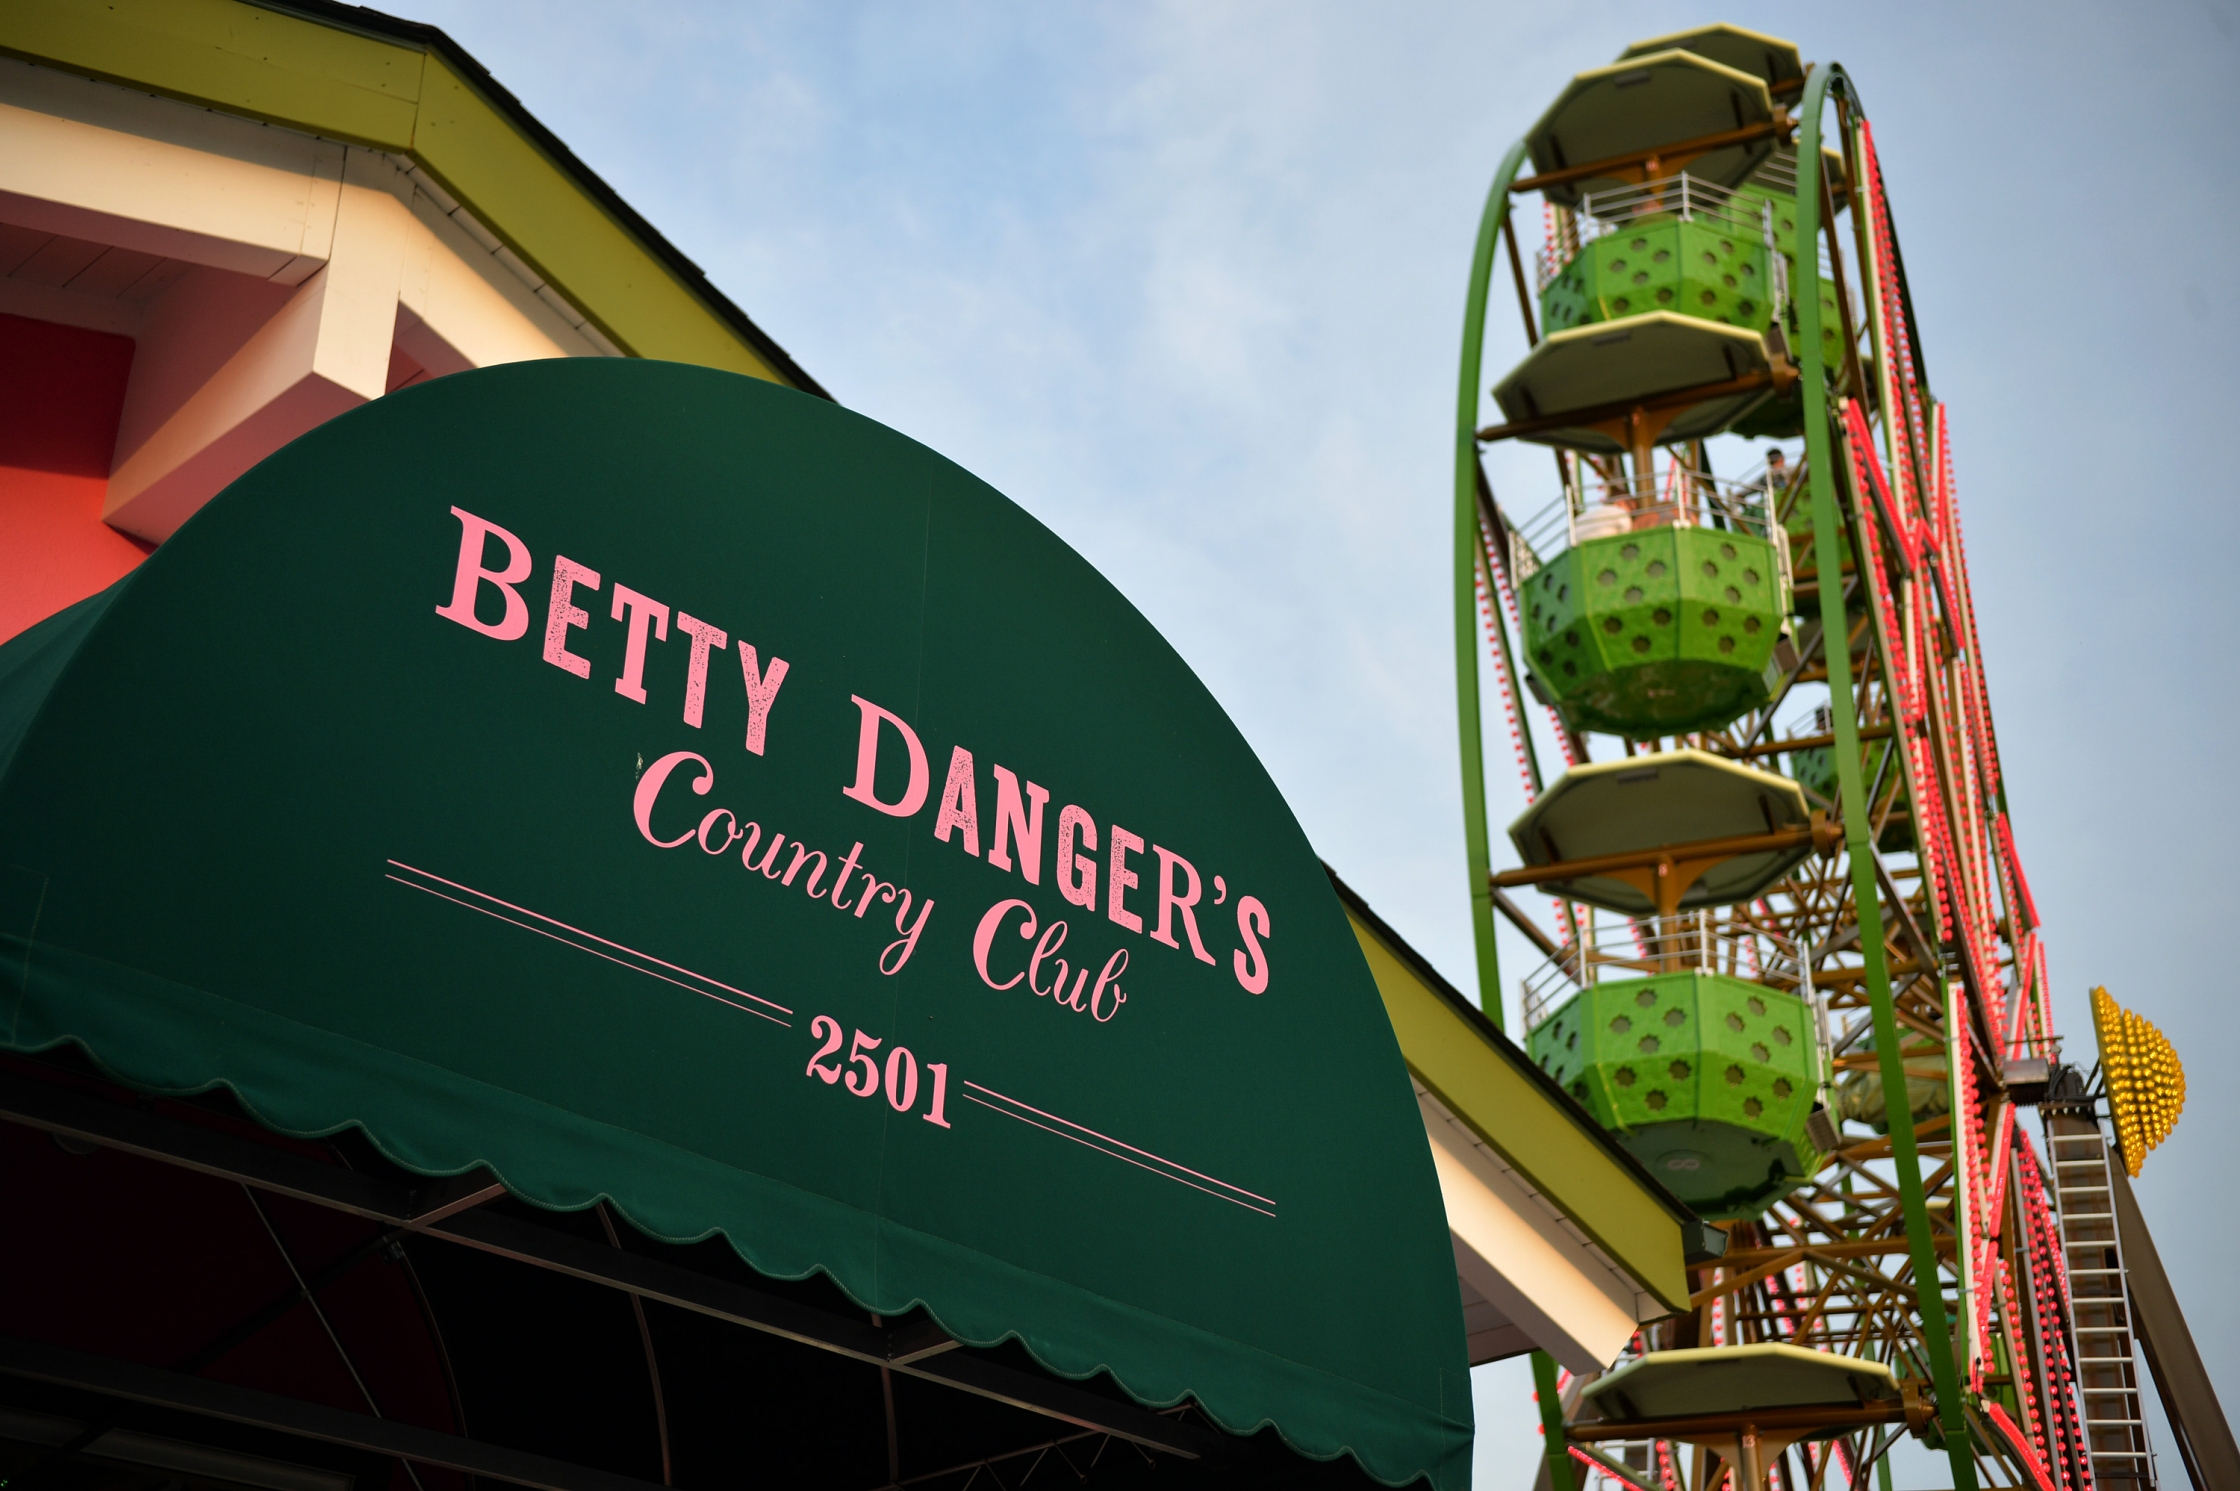 Betty Dangeru0027s Energetic Patio Atmosphere Gives Guests The Opportunity To  Ride A Ferris Wheel Or Mini Golf, While Enjoying One Of The Restaurantu0027s  Beloved ...